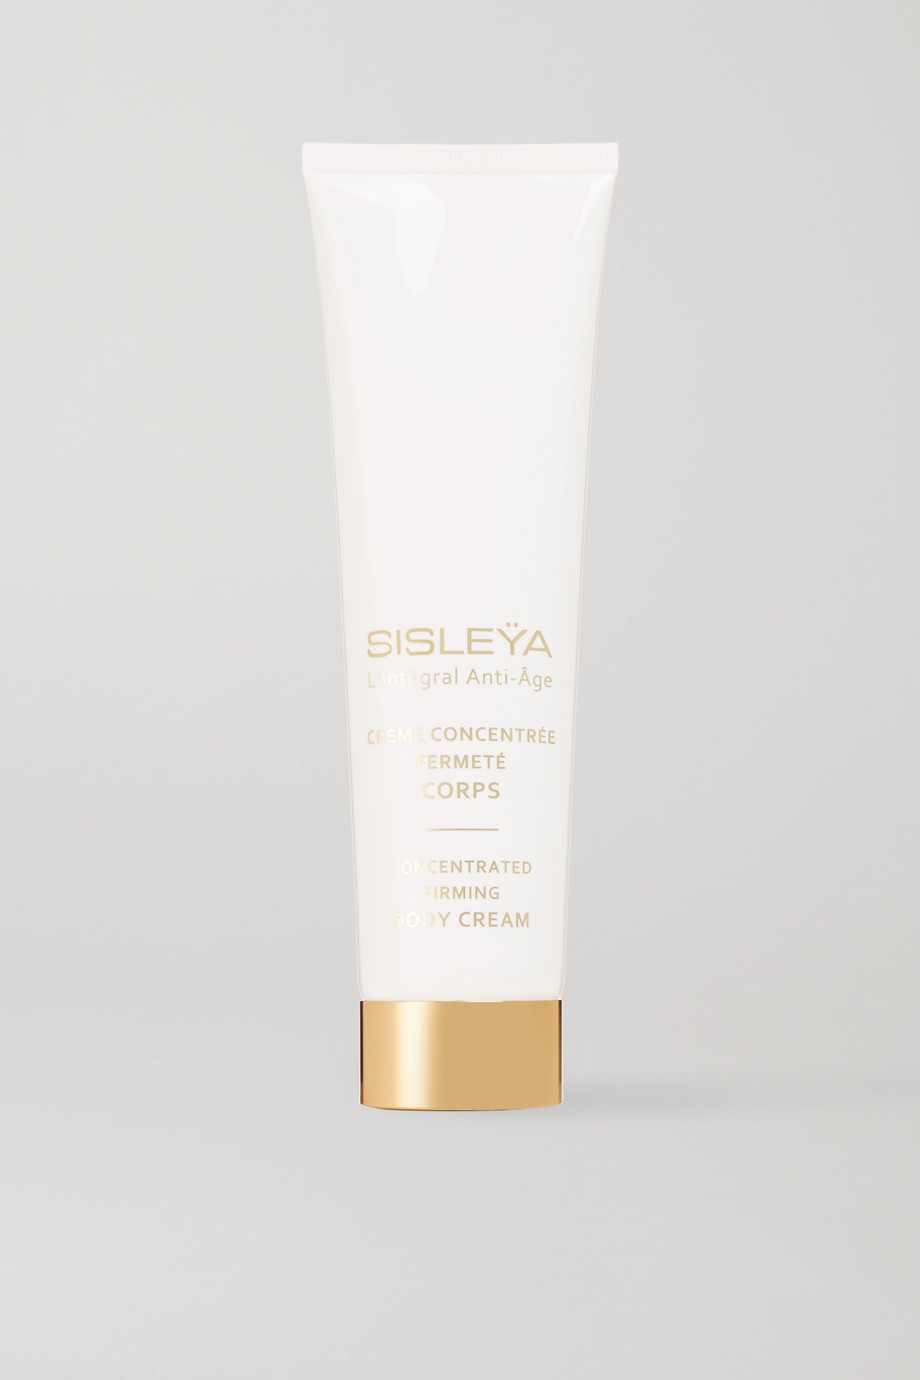 Sisley Sisleÿa L'Intégral Anti-Age Concentrated Firming Body Cream, 150ml